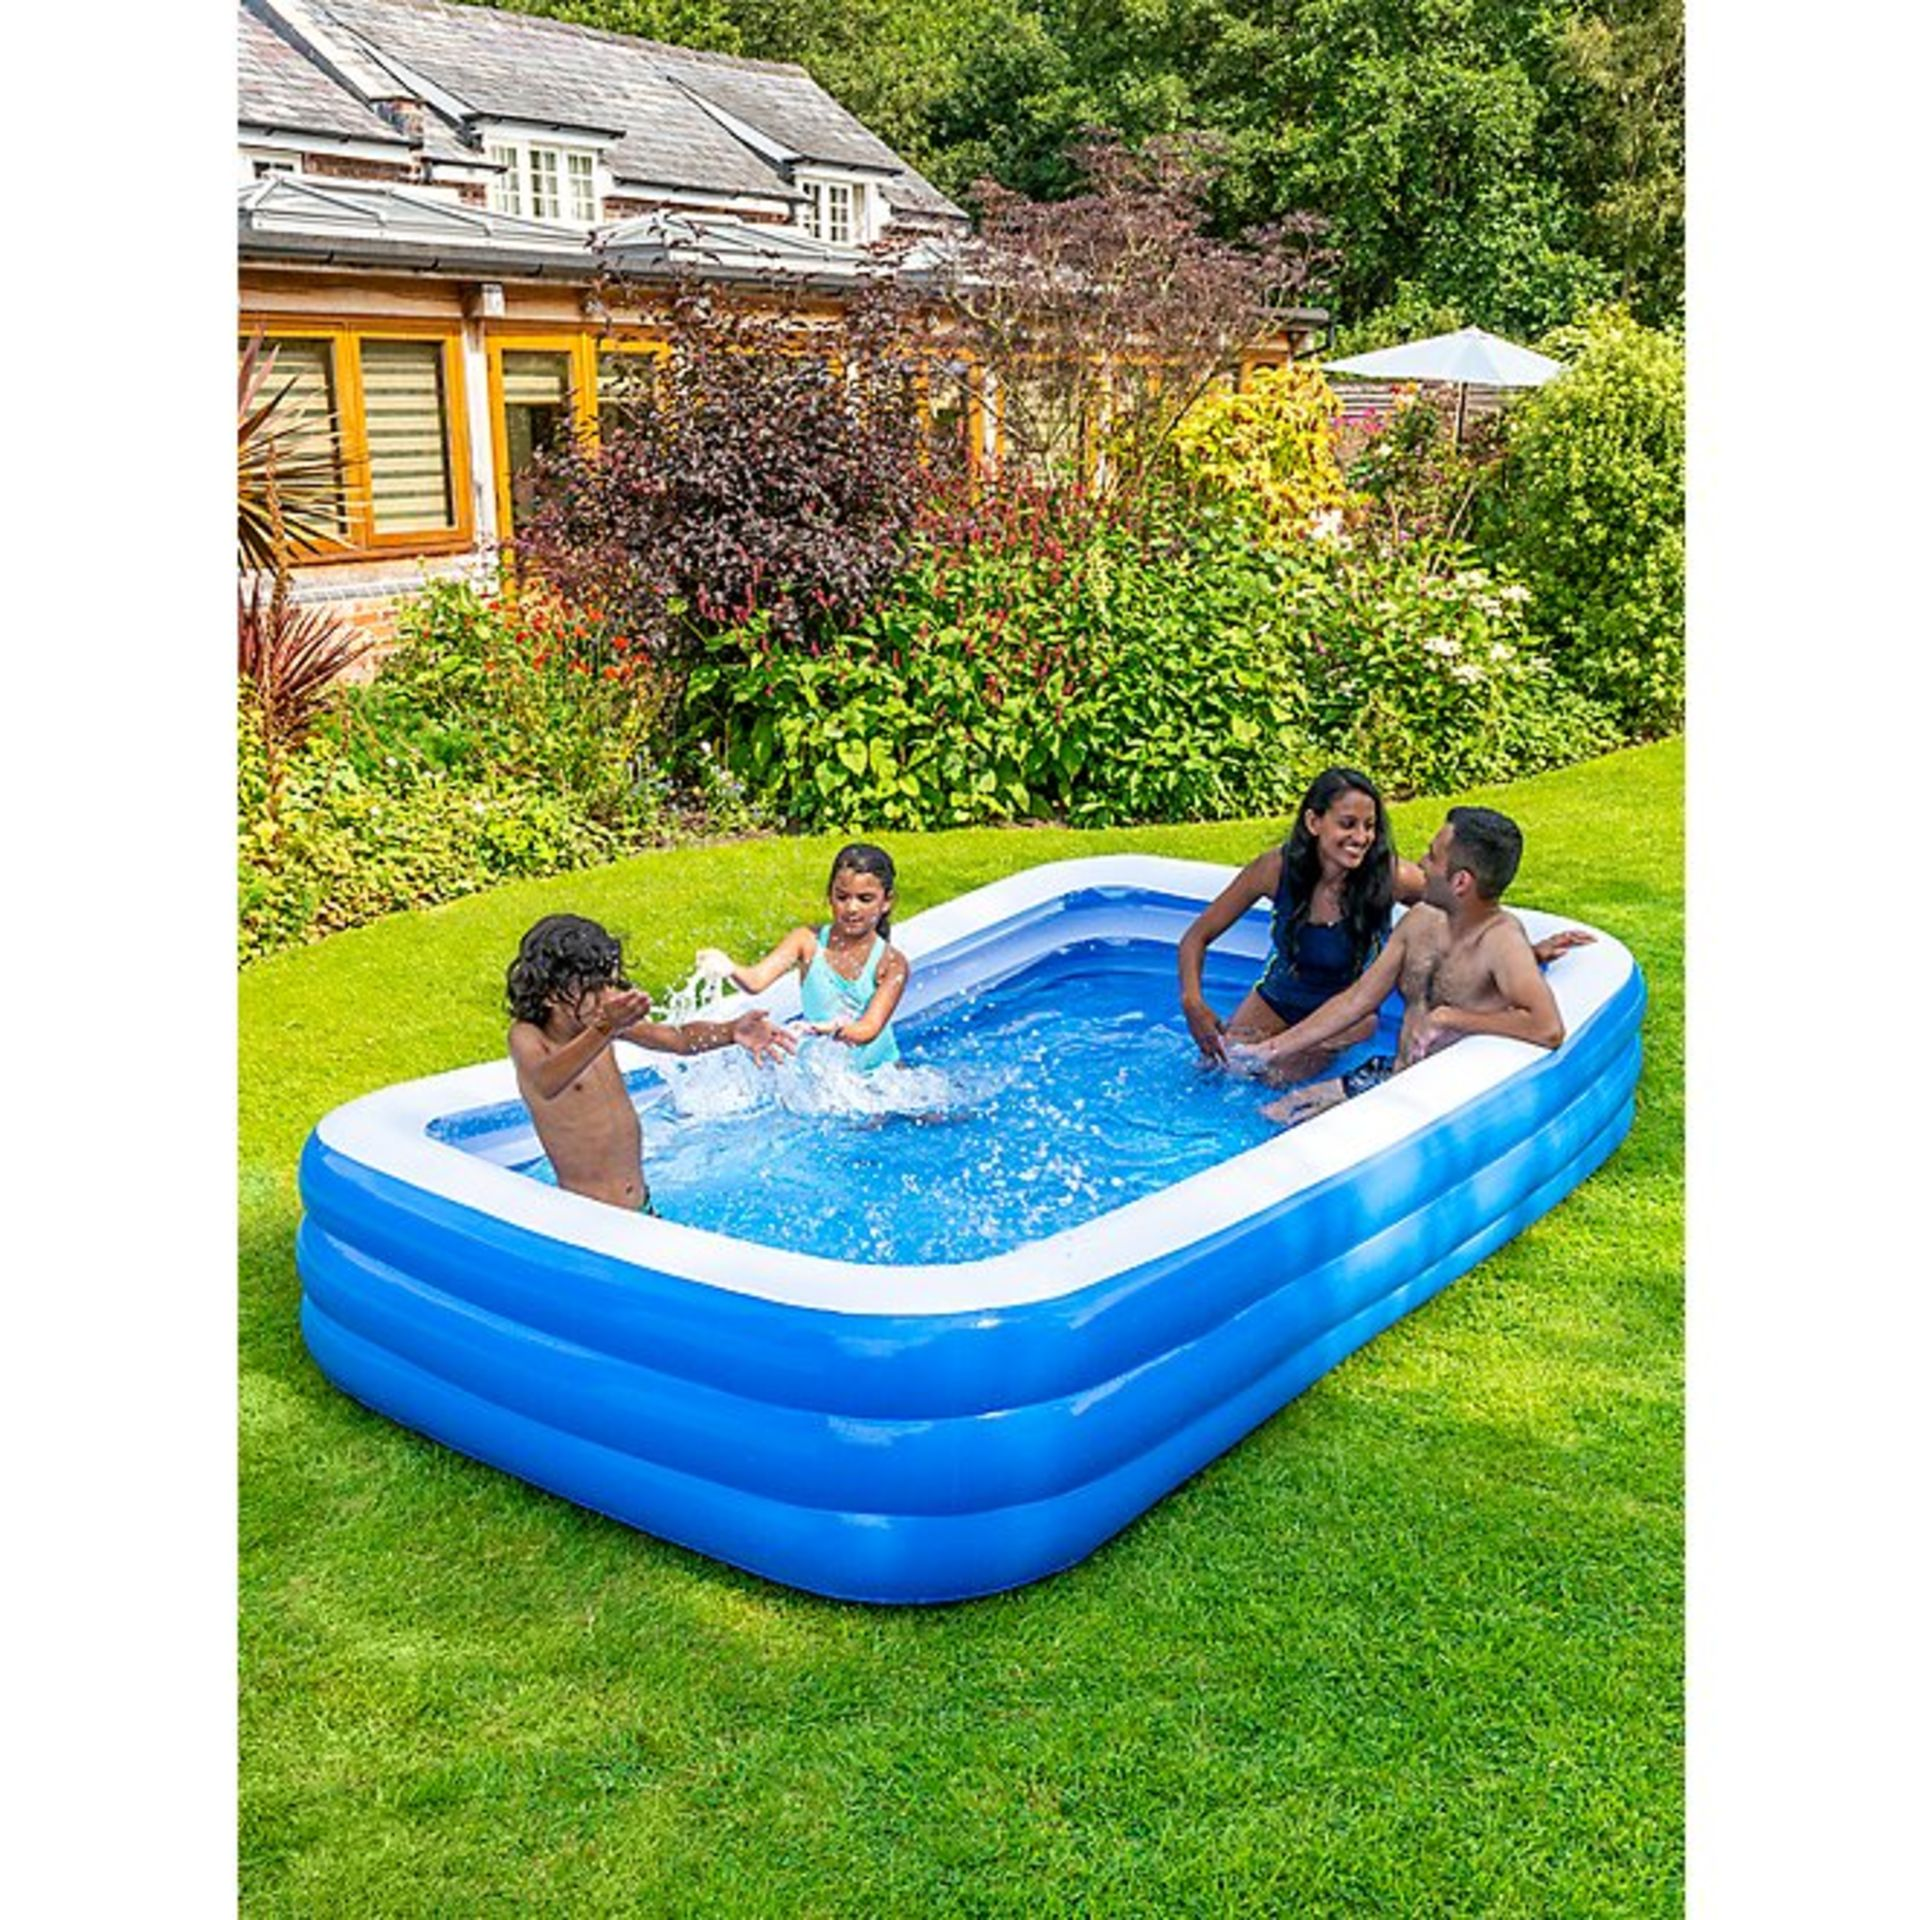 (3G) 6x Kid Connection Inflatable Items. 5x 3 Ring Pool. 1x Inflatable Pirate Ship,